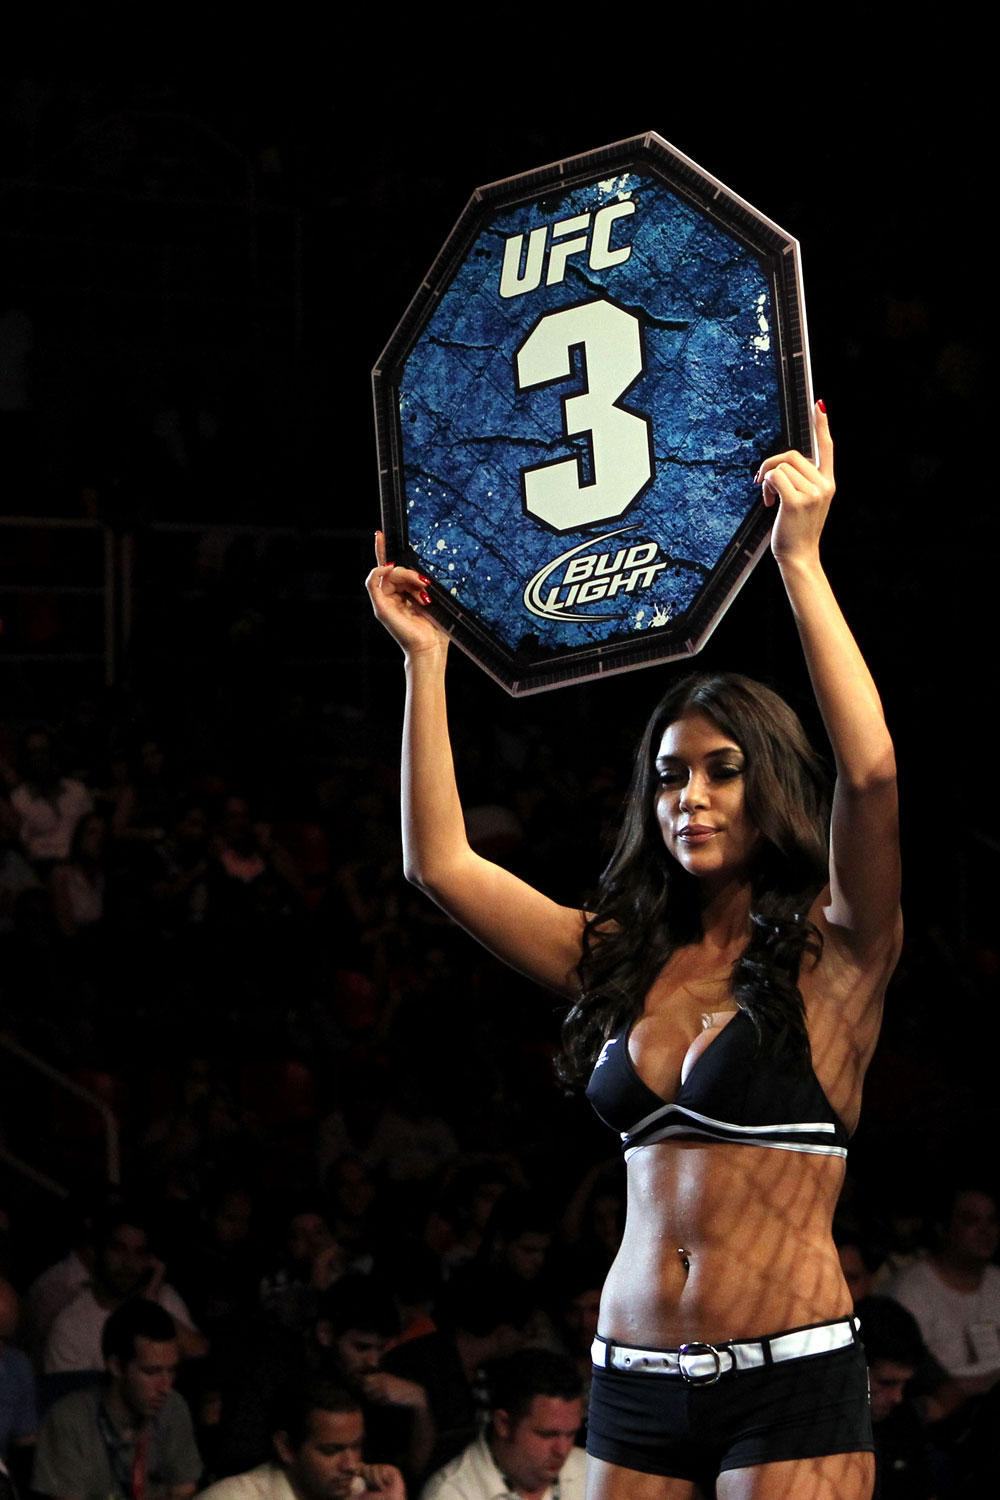 RIO DE JANEIRO, BRAZIL - JANUARY 14:  UFC Octagon Girl Arianny Celeste looks on during the Ricardo Funch versus Mike Pyle in a welterweight bout during UFC 142 at HSBC Arena on January 14, 2012 in Rio de Janeiro, Brazil.  (Photo by Josh Hedges/Zuffa LLC/Zuffa LLC via Getty Images)